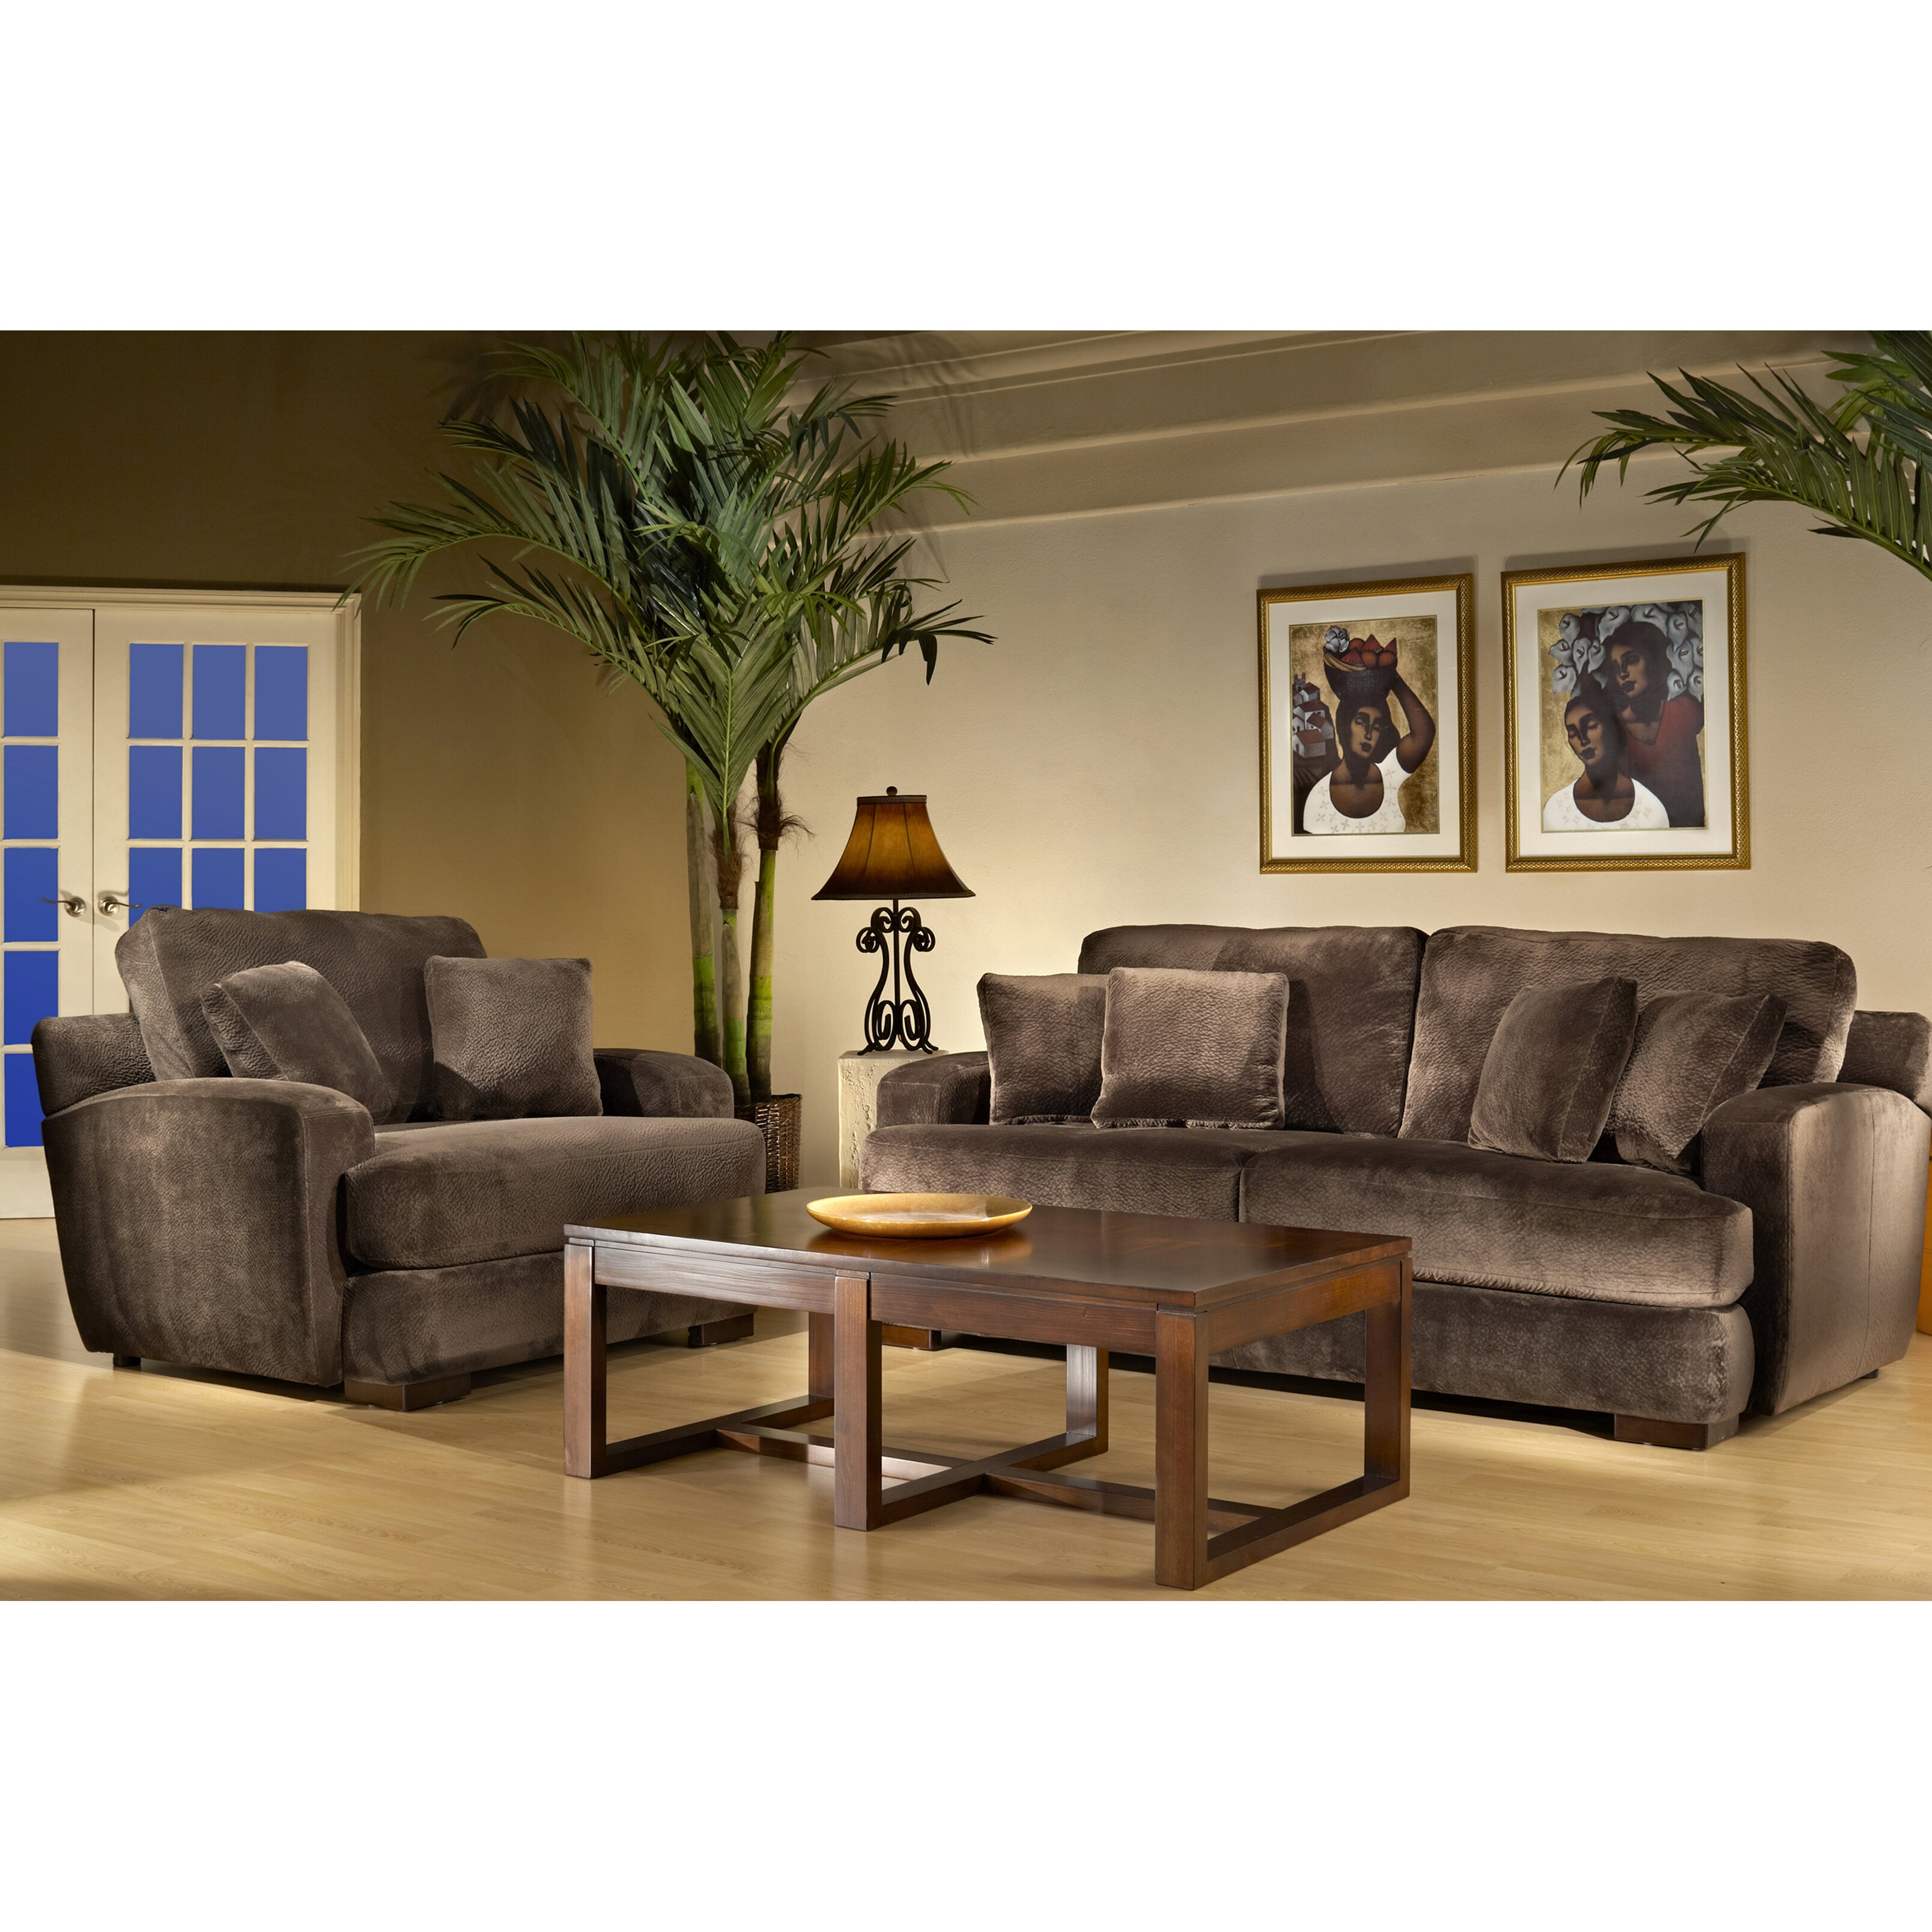 Sage and brown living room - Sage green and brown living room ideas ...